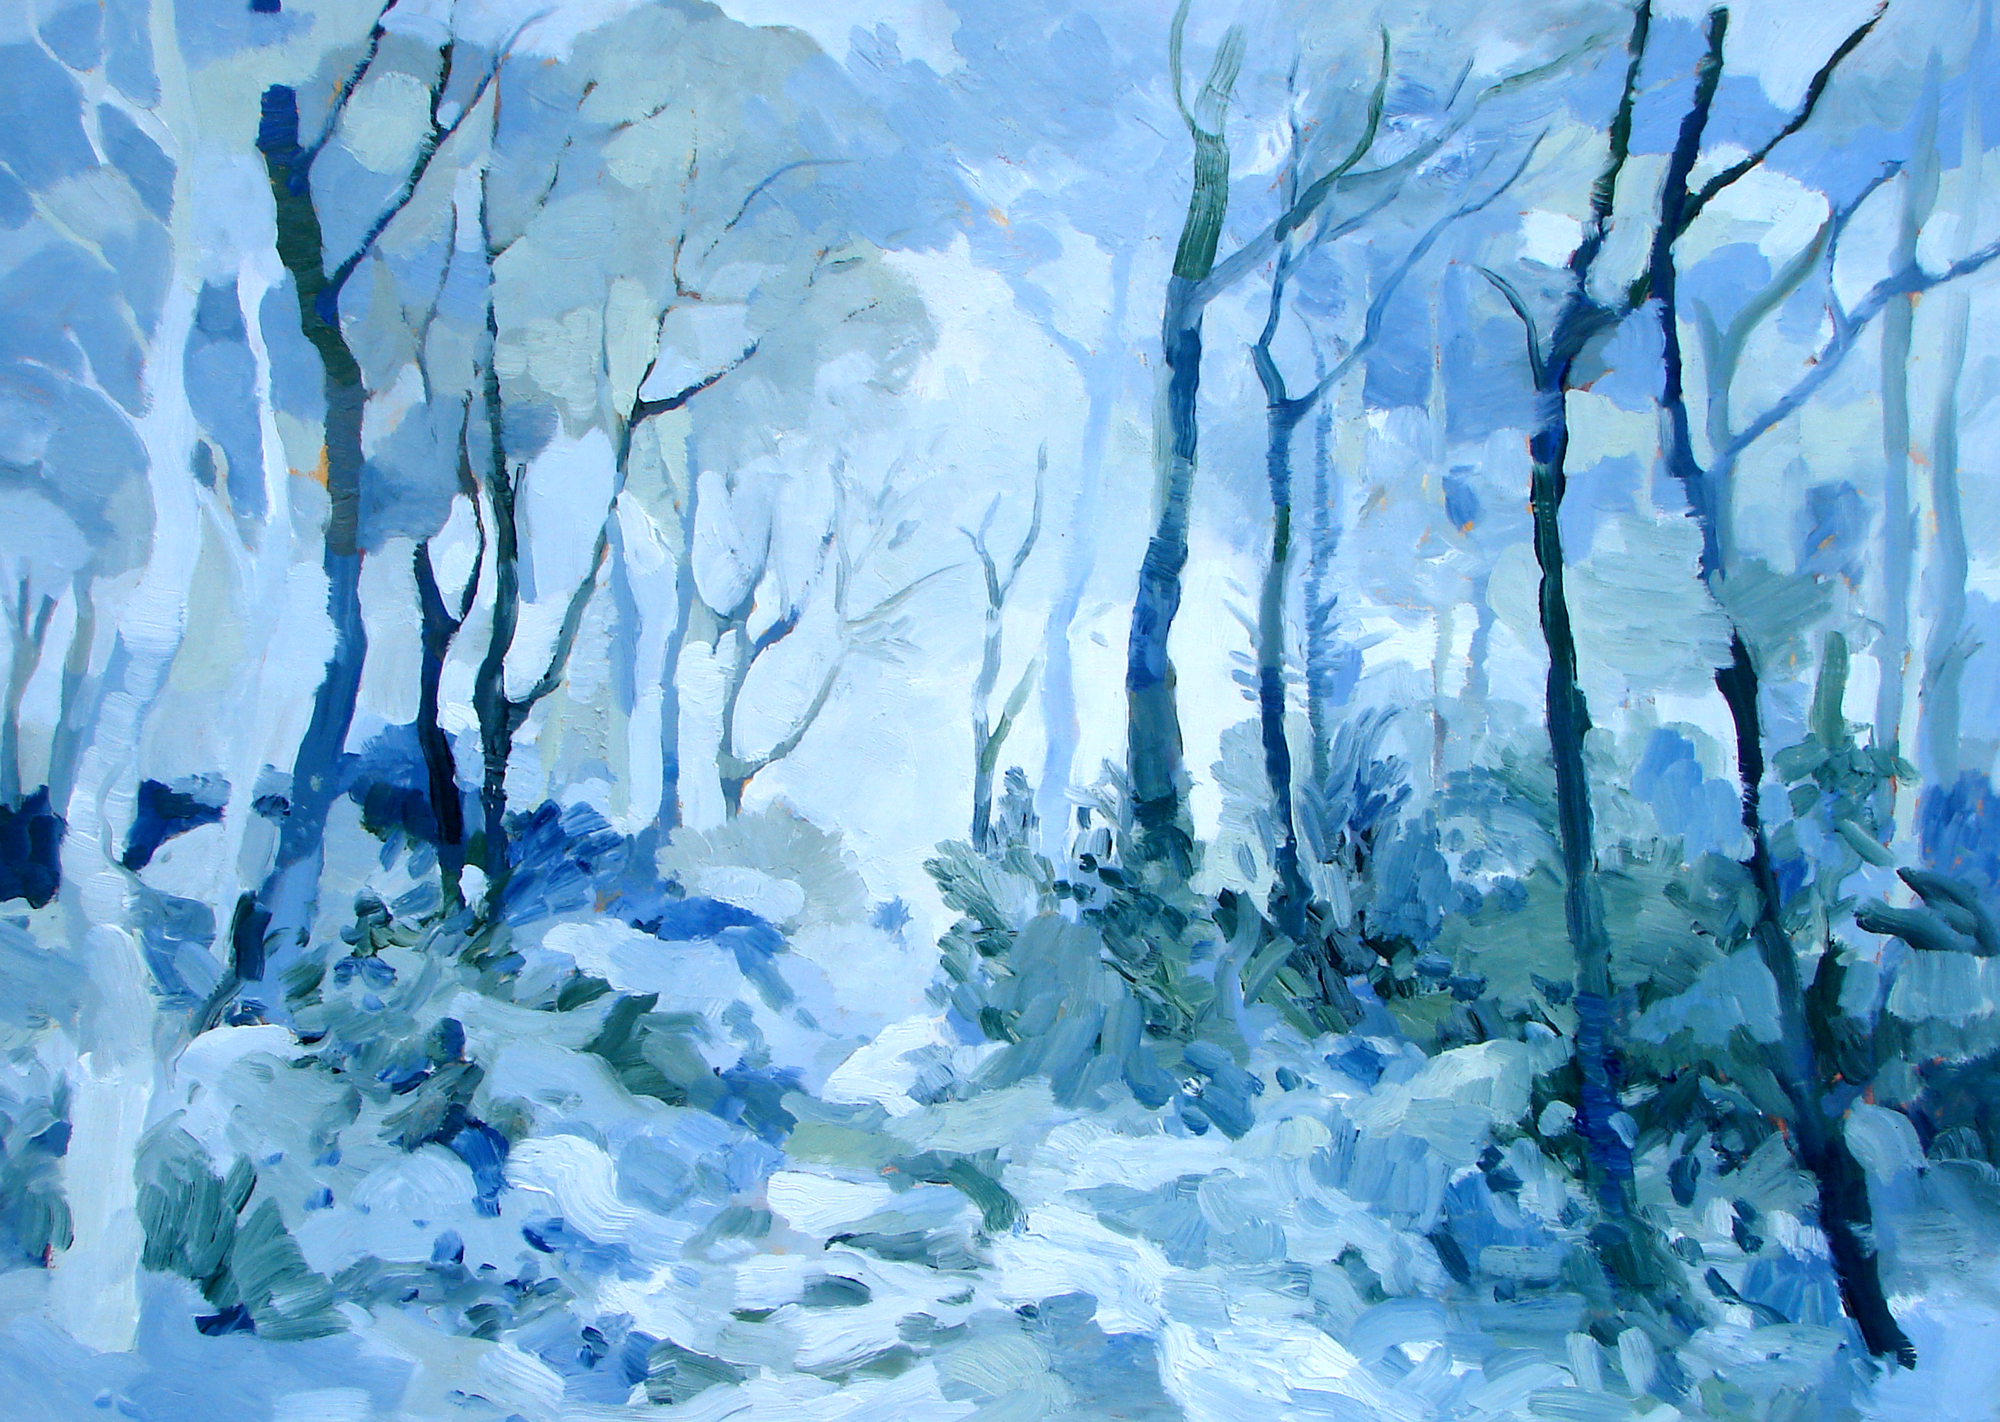 Osmaston Park Woods in the Ice and Snow. Oil on canvas. 40 x 55 cm. (Sold)